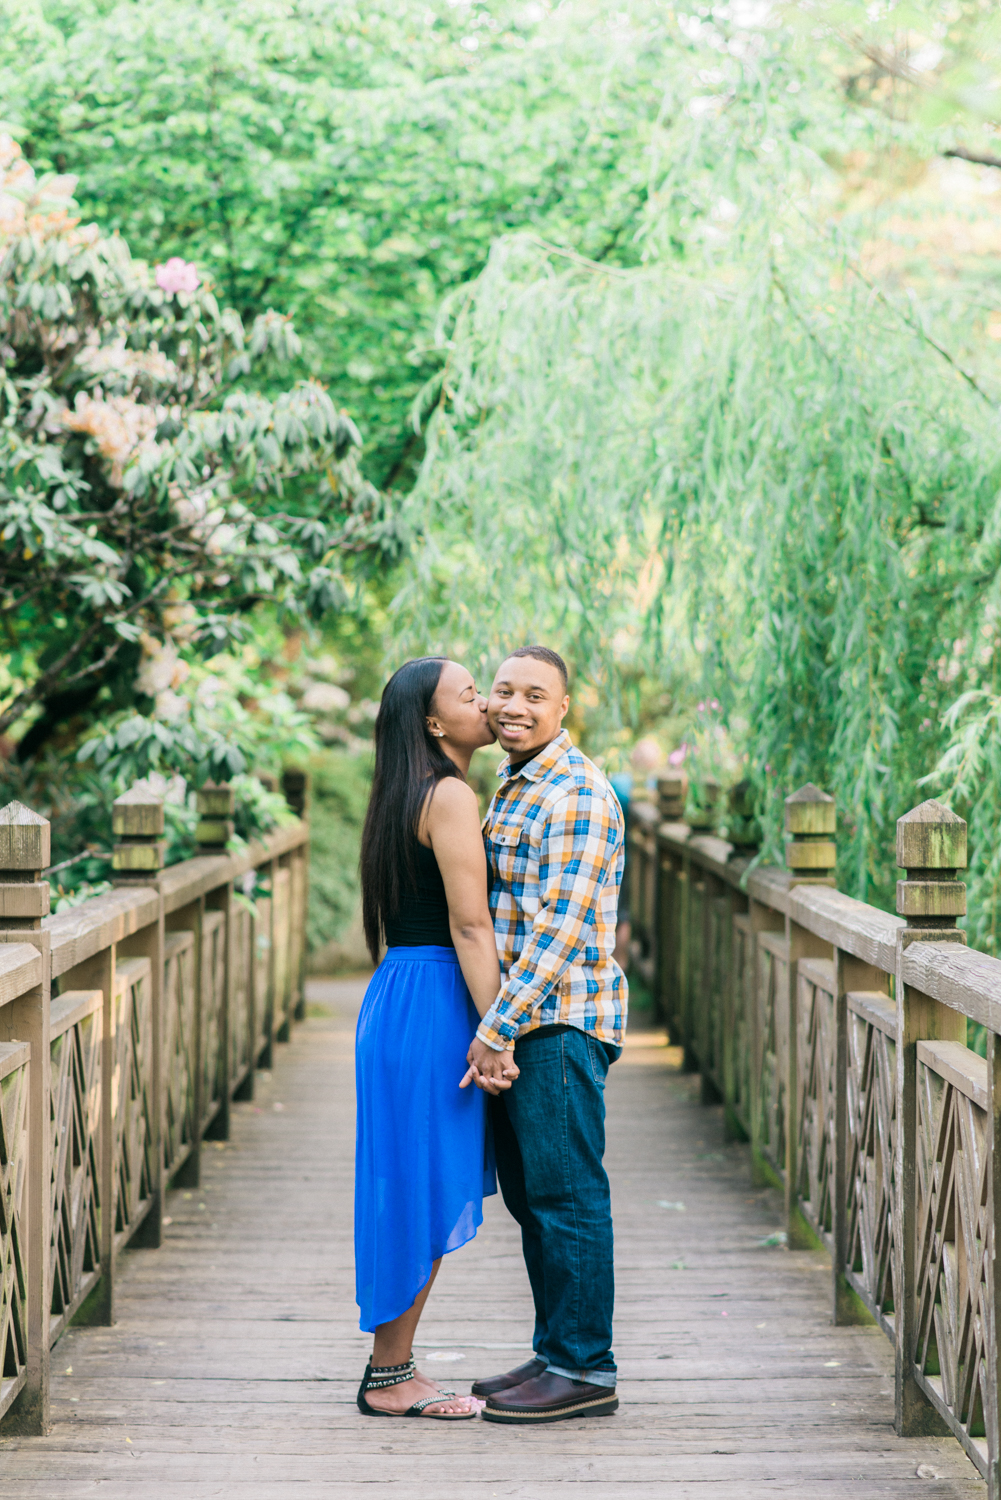 portland-engagement-photographer-wsu-graduation-portrait-crystal-springs-rhododendron-garden-shelley-marie-photo-37